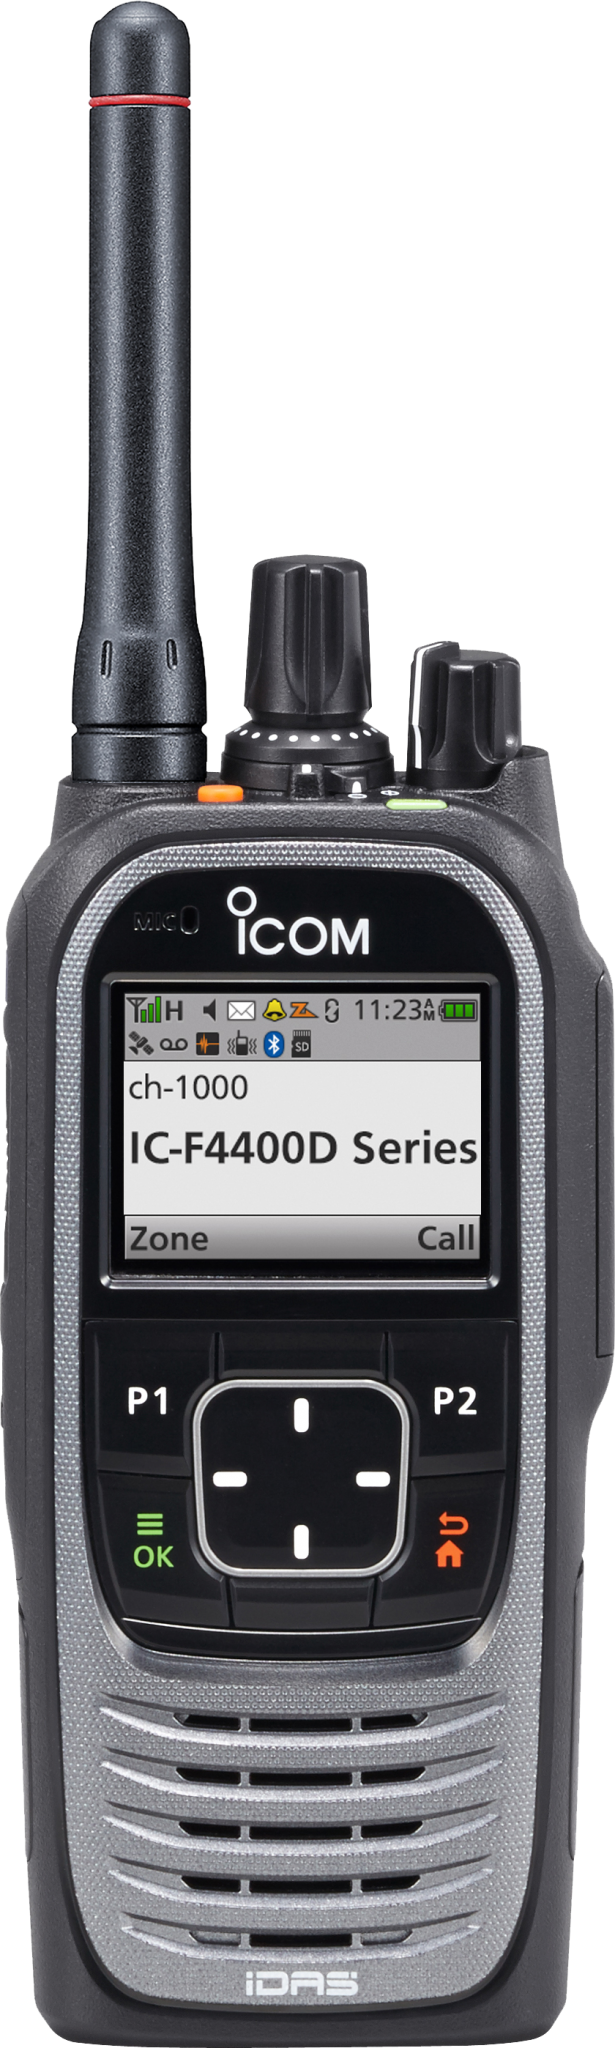 Icom IC-F3400DS featured image